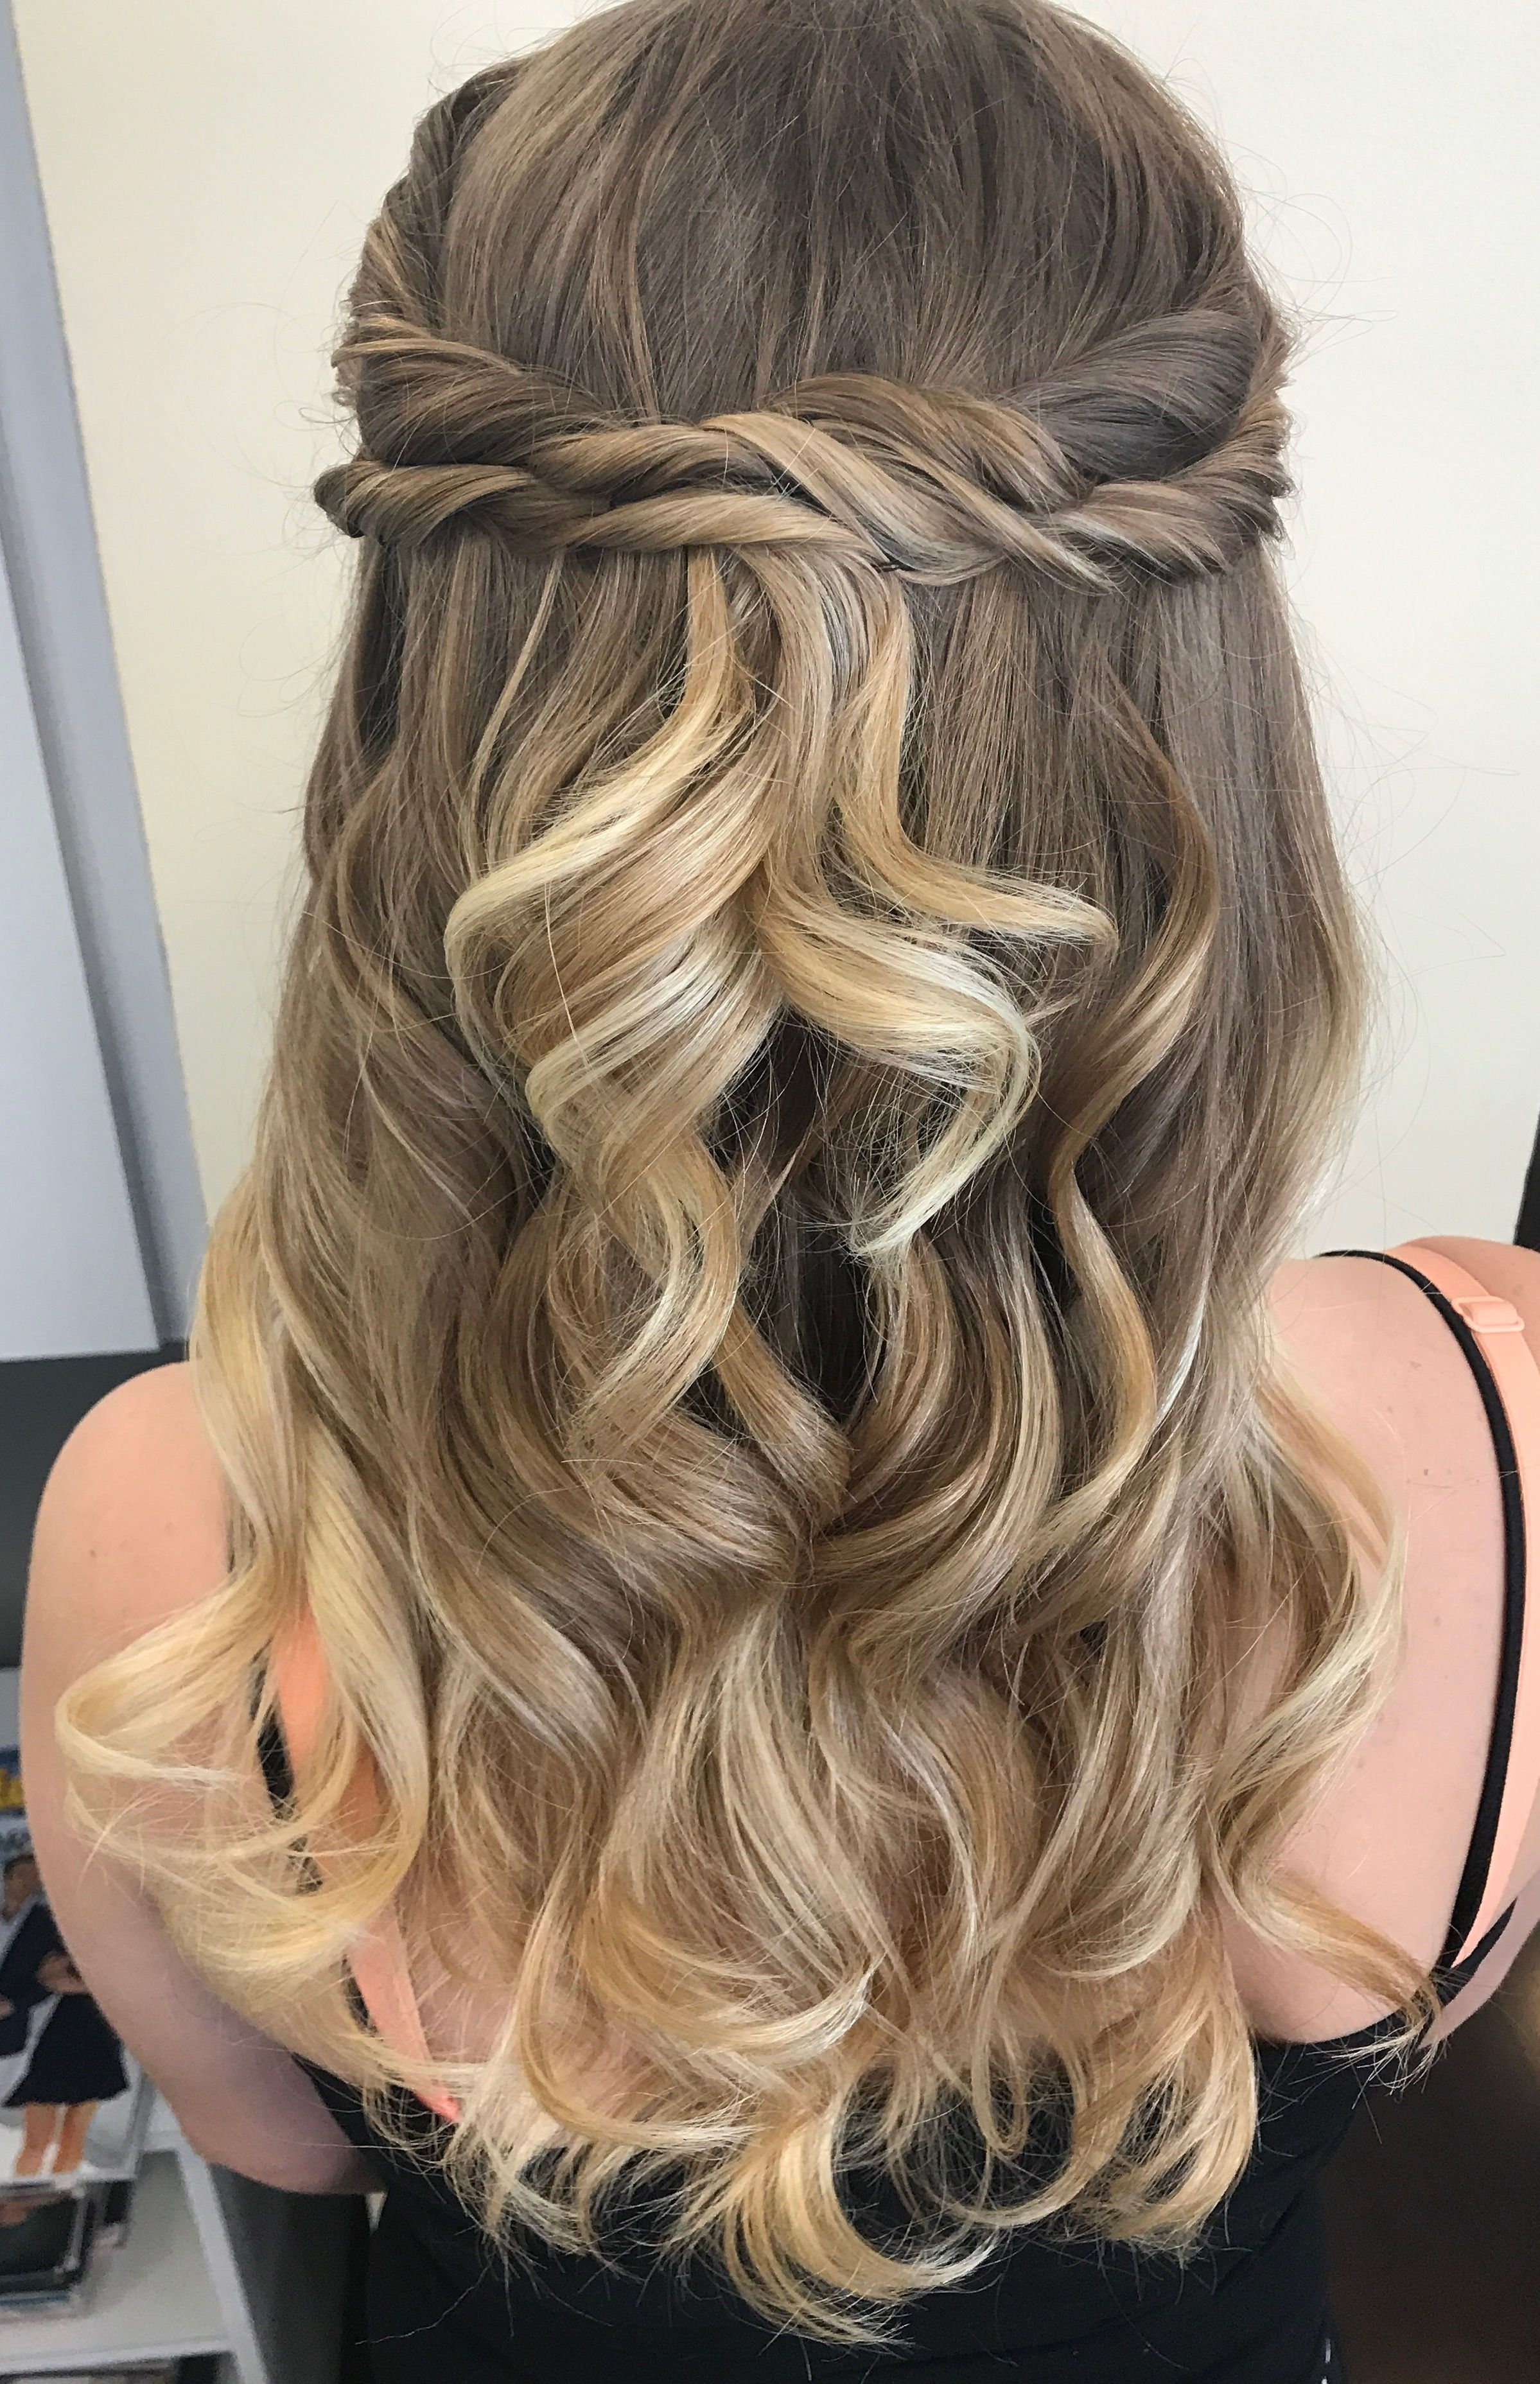 Cut hair prom inspiration advise to wear for spring in 2019